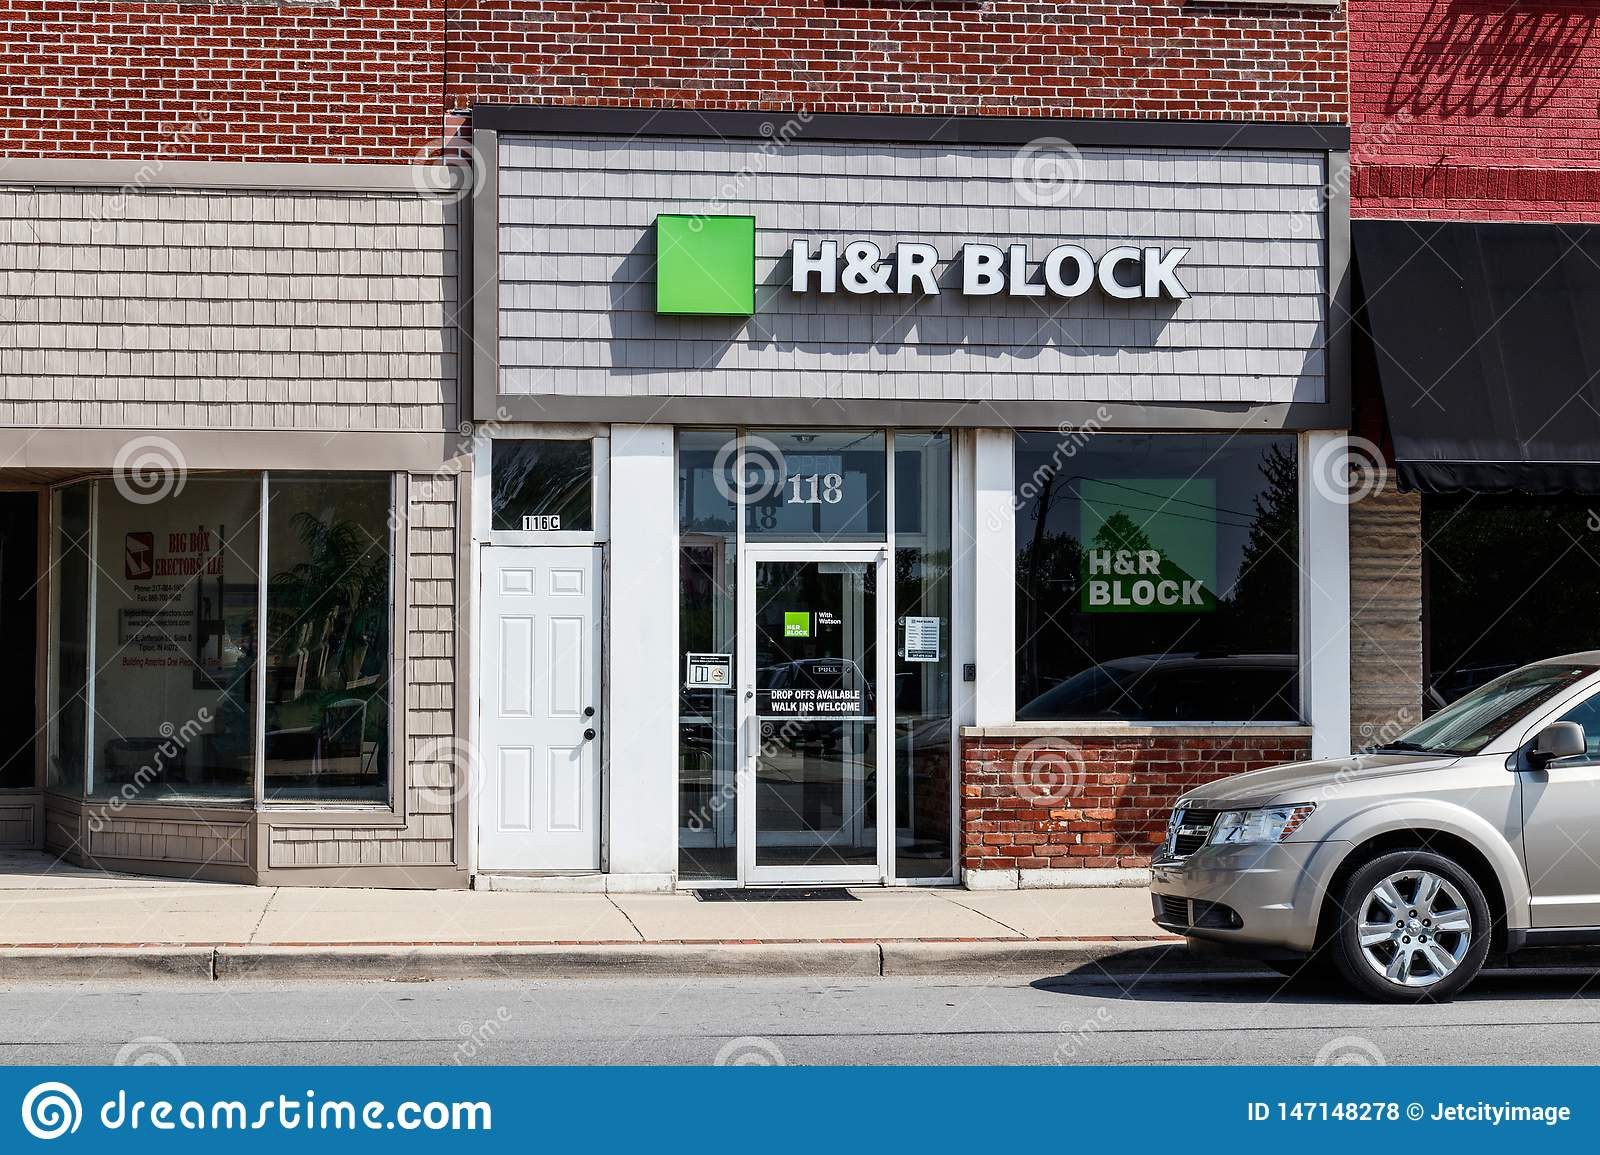 H&R Block Retail Tax Preparation Location. Block Operates 12,000 Locations III